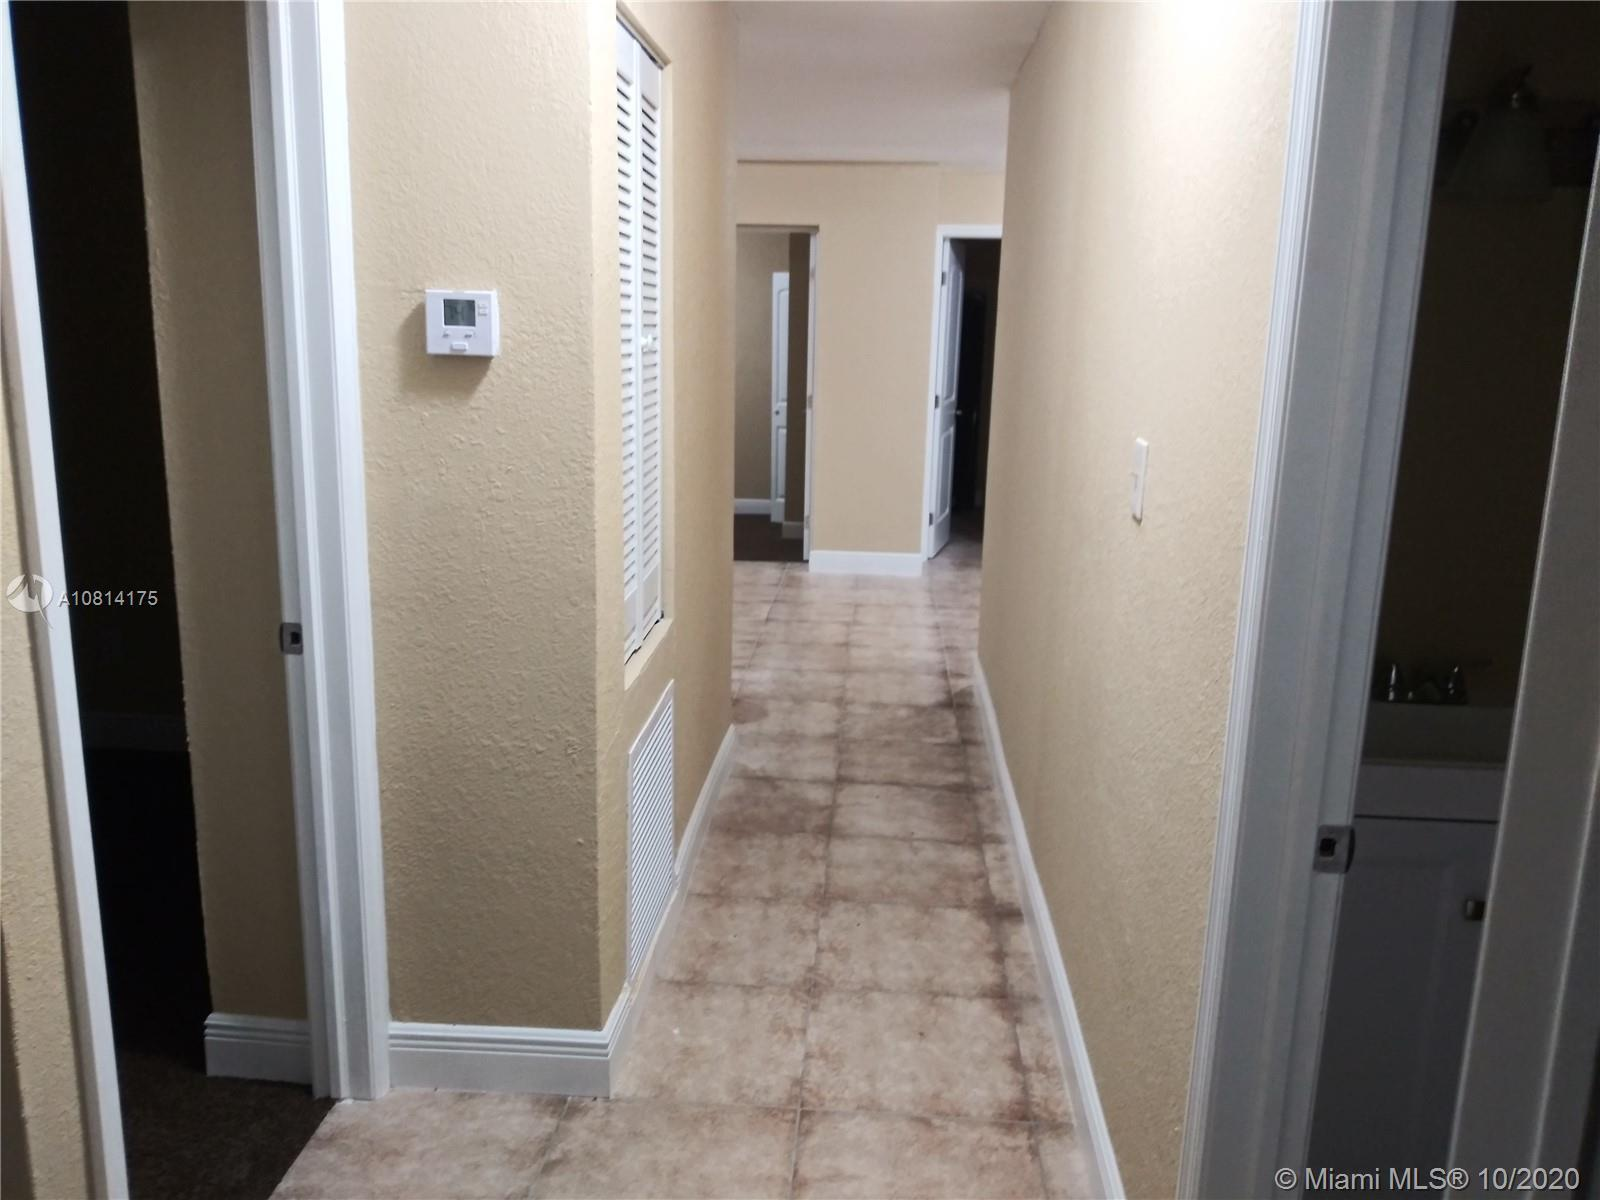 HUGE FIVE BEDROOM TWO BATH HOME, GREAT HOME FOR A LARGE FAMILY. ALL INTERIOR RECENTLY UPDATED, TILE